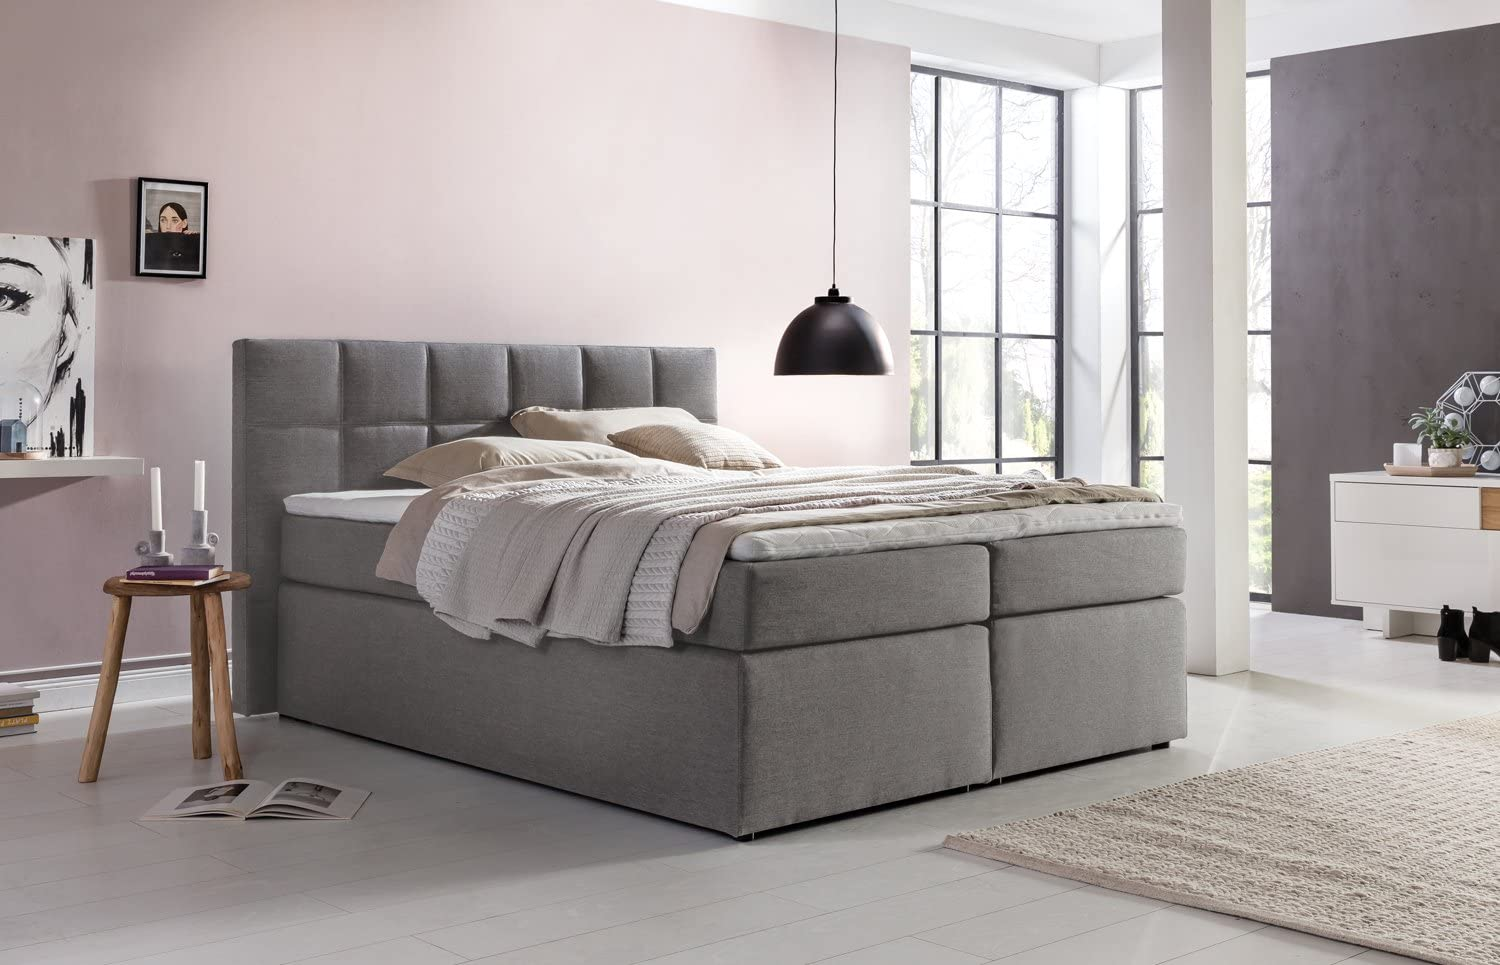 Joy Box Spring Bed Bea H3 Grey 160 X 200 Cm Including Delivery To The Bedroom Furniture 7 Zone Pocket Spring Mattress Memory Topper American Luxury Hotel Bed Upholstered Amazon De Kuche Haushalt